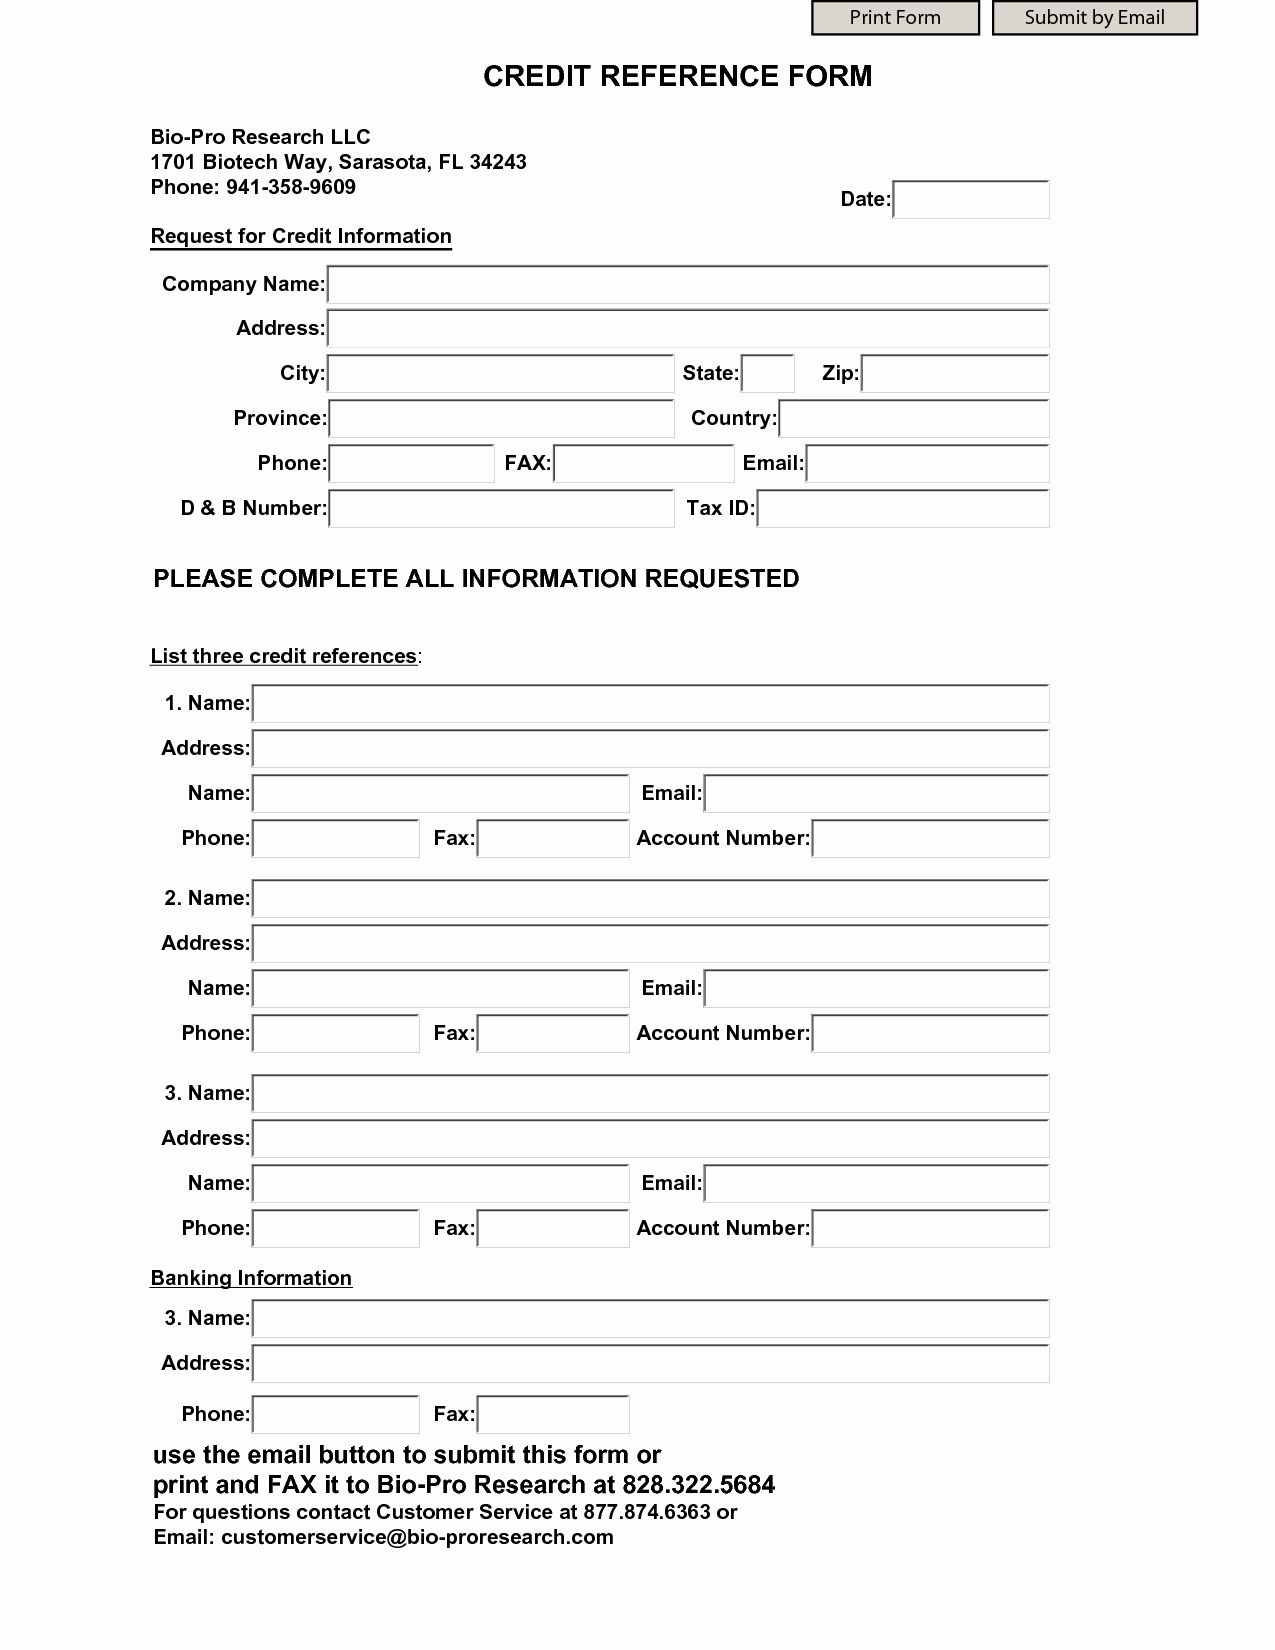 Credit Reference Form Template Fresh Business Credit Reference Form Templates Printable Free Reference Letter Template Letter Templates Free